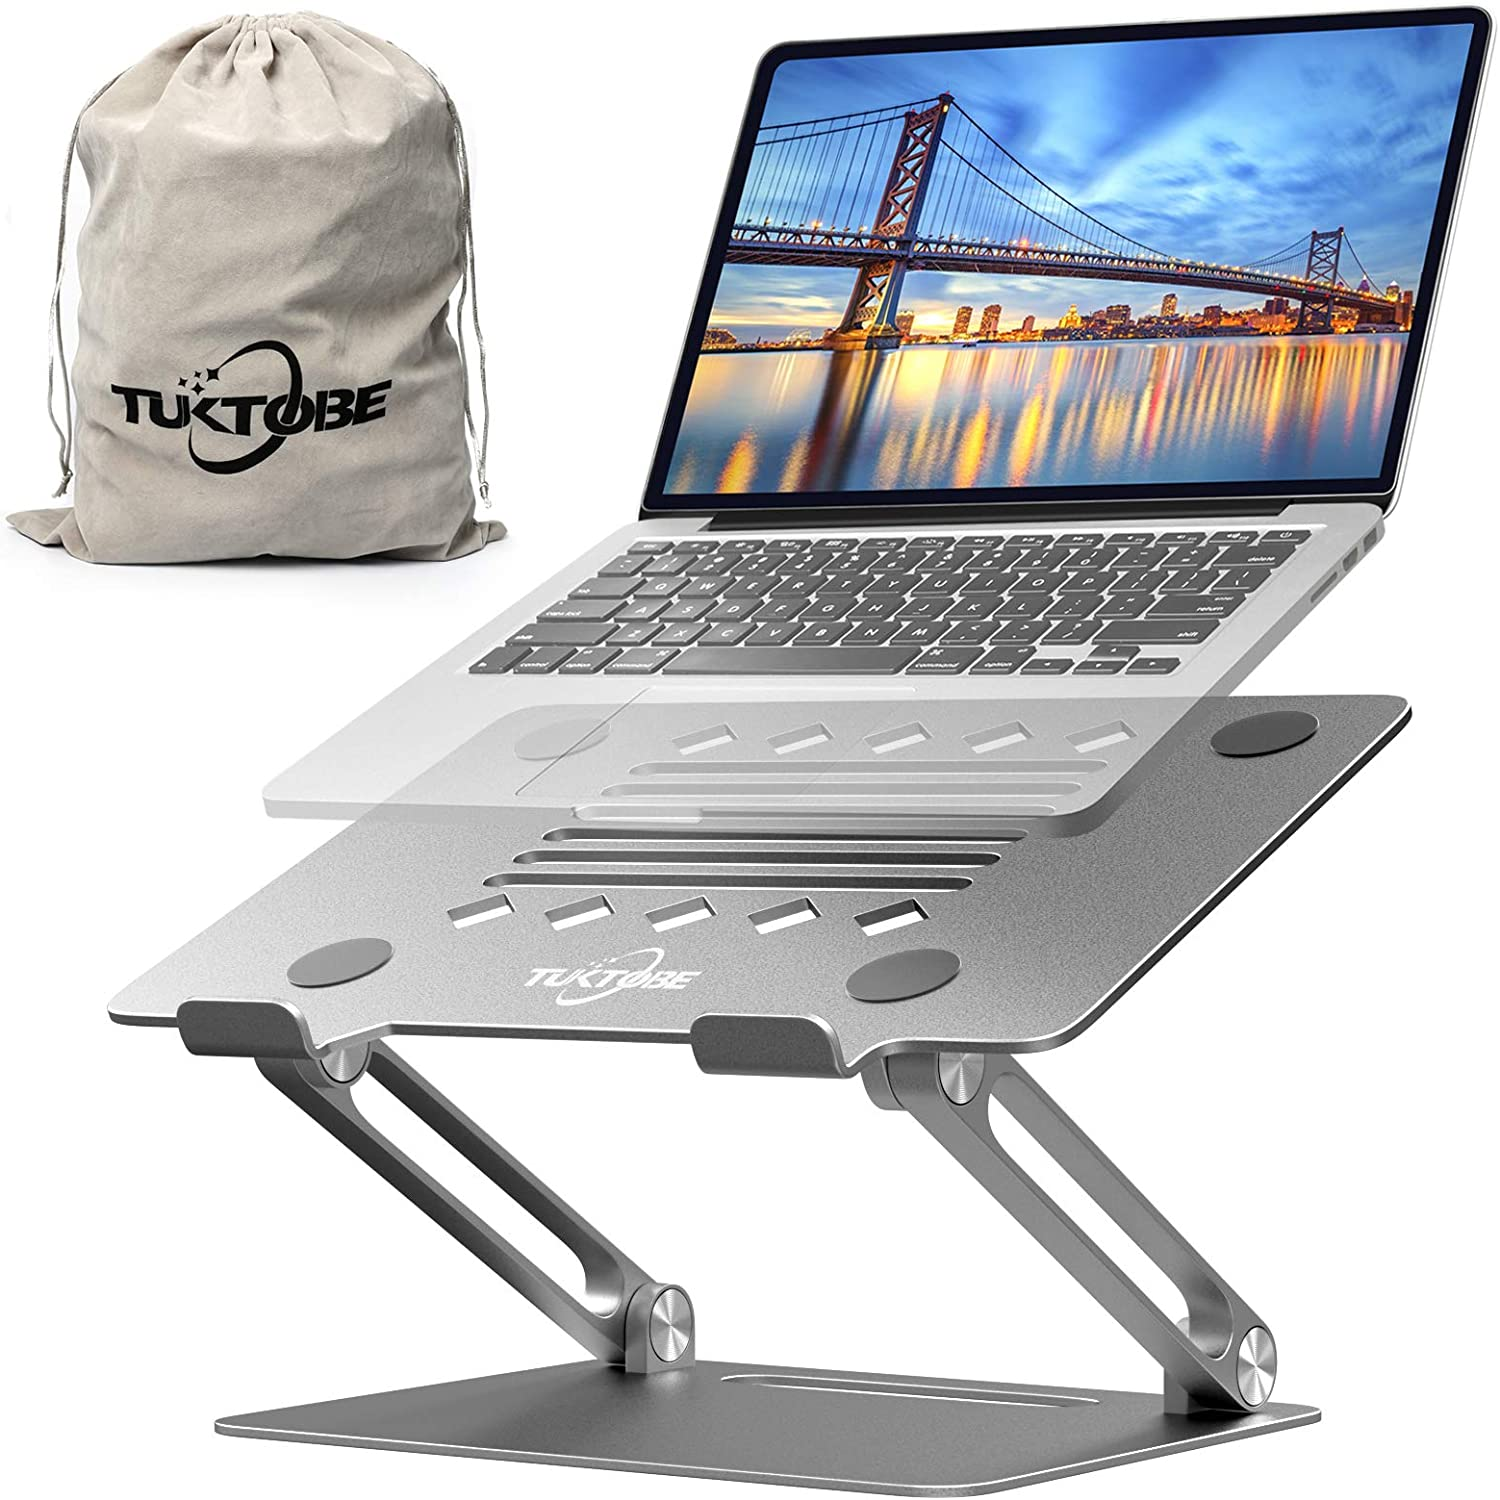 TUKTOBE Laptop Stand, Ergonomic Height Angle Adjustable Laptop Holder Aluminum Notebook Stand Riser with Heat-Vent Computer Stand for Desk Compatible with MacBook Air Pro, Dell XPS, Lenovo (Silver)